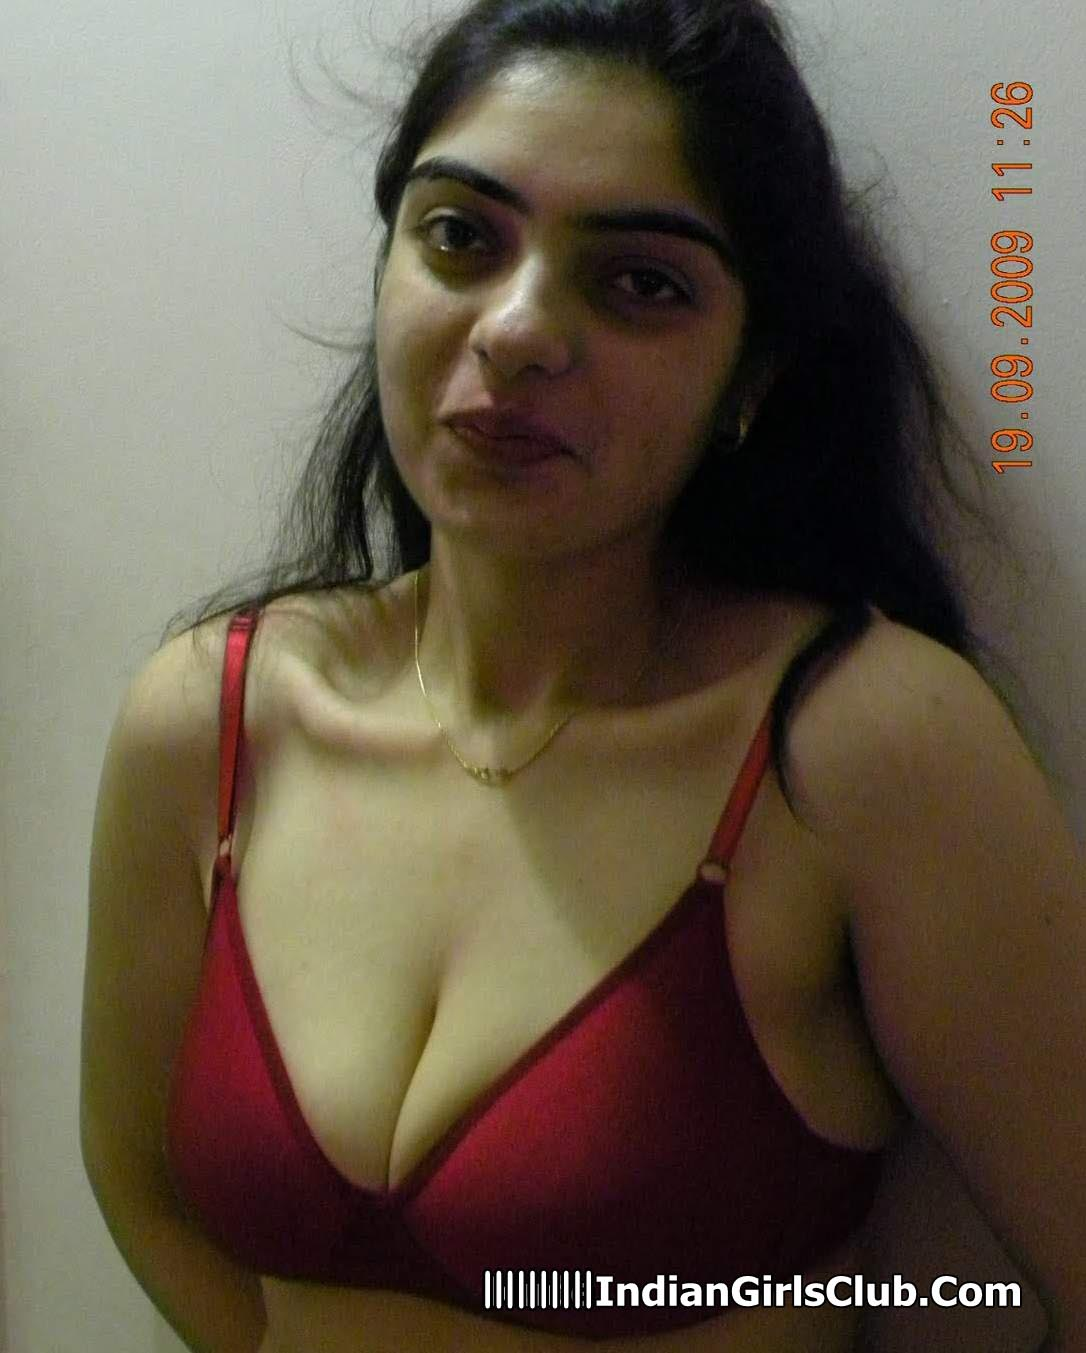 pakistani girls nude 3